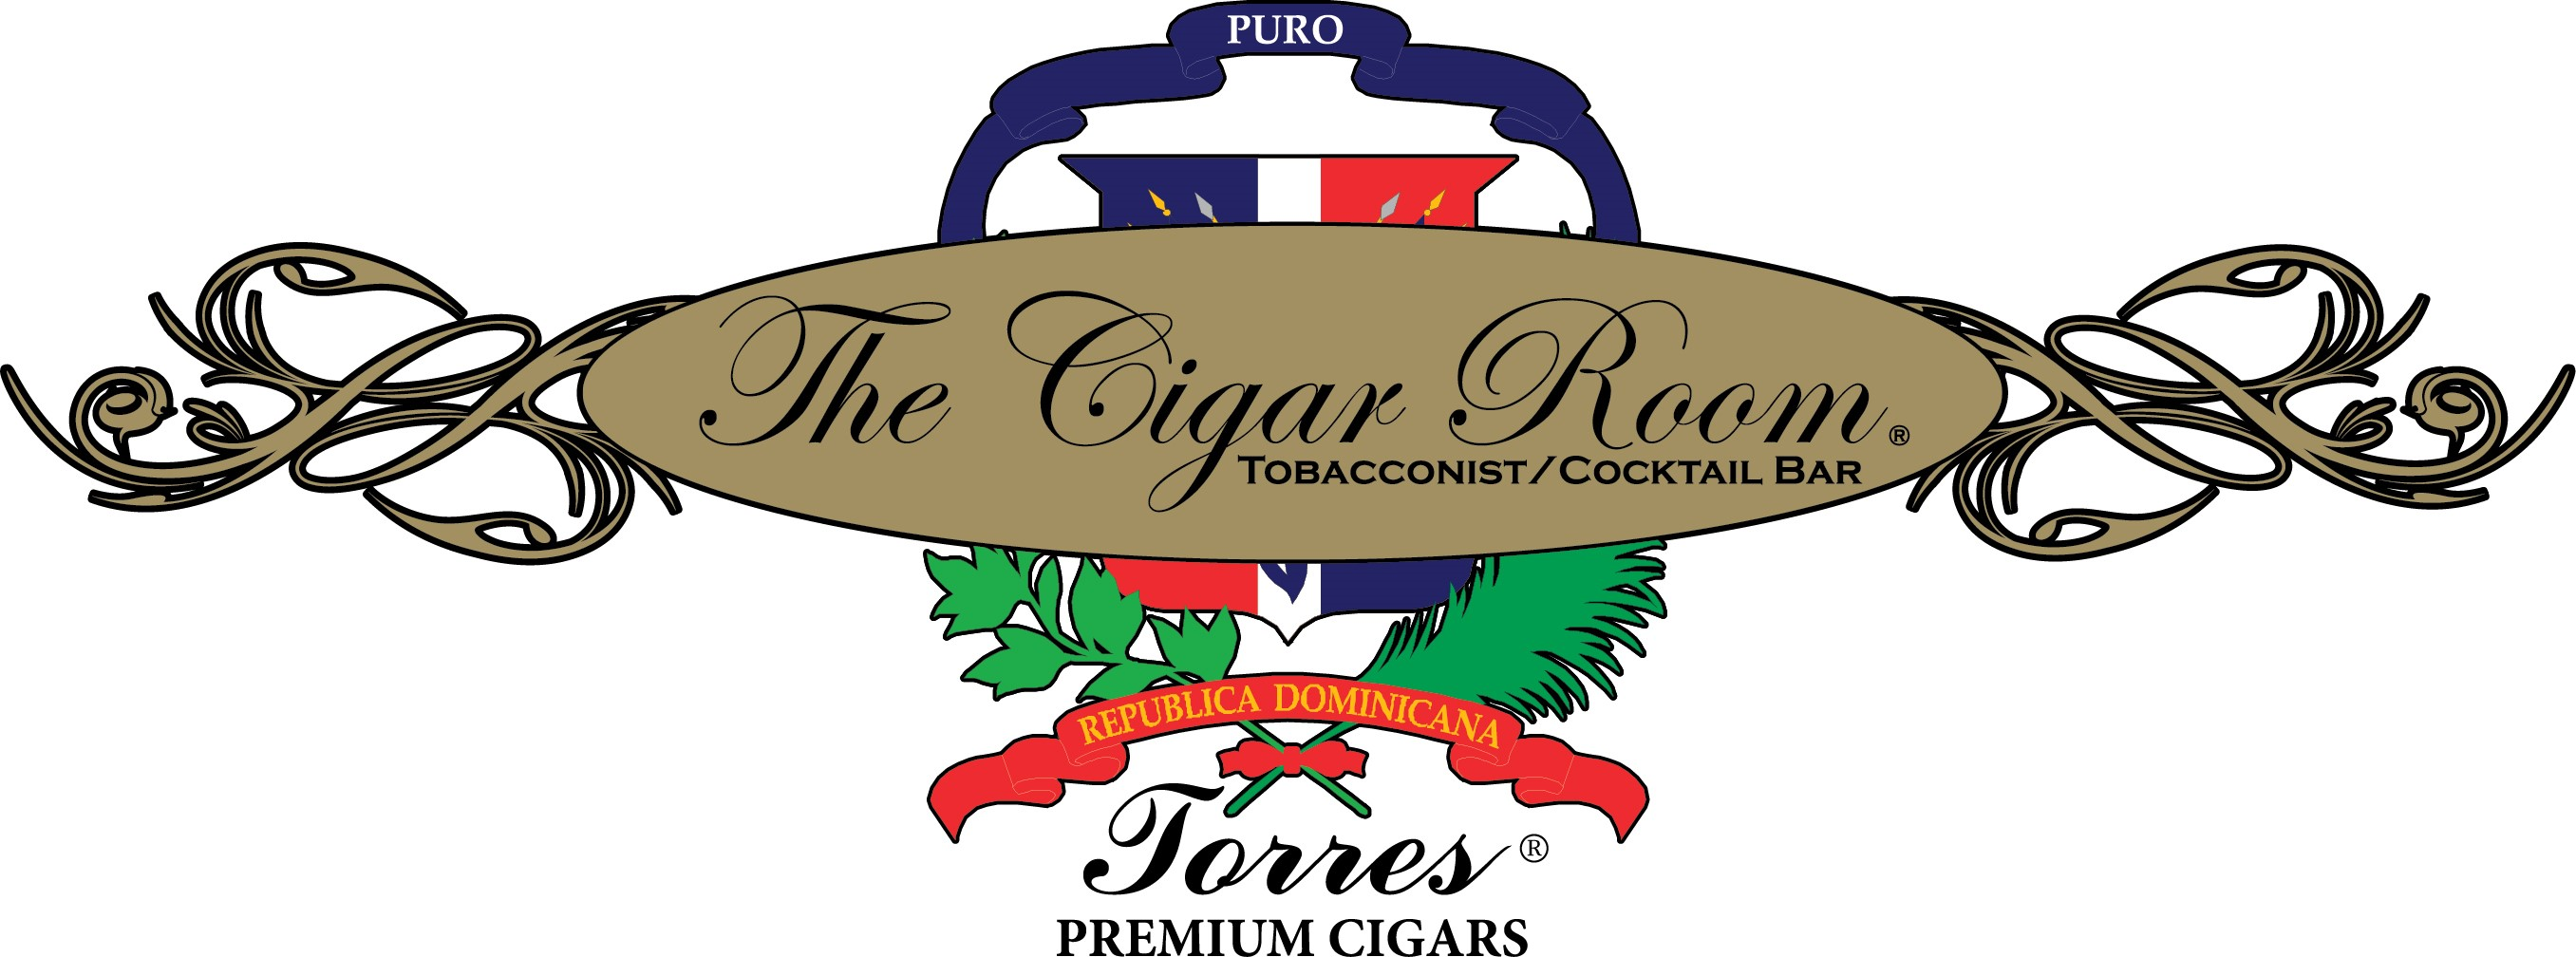 Hi-Res Cigar Room Logo (2)